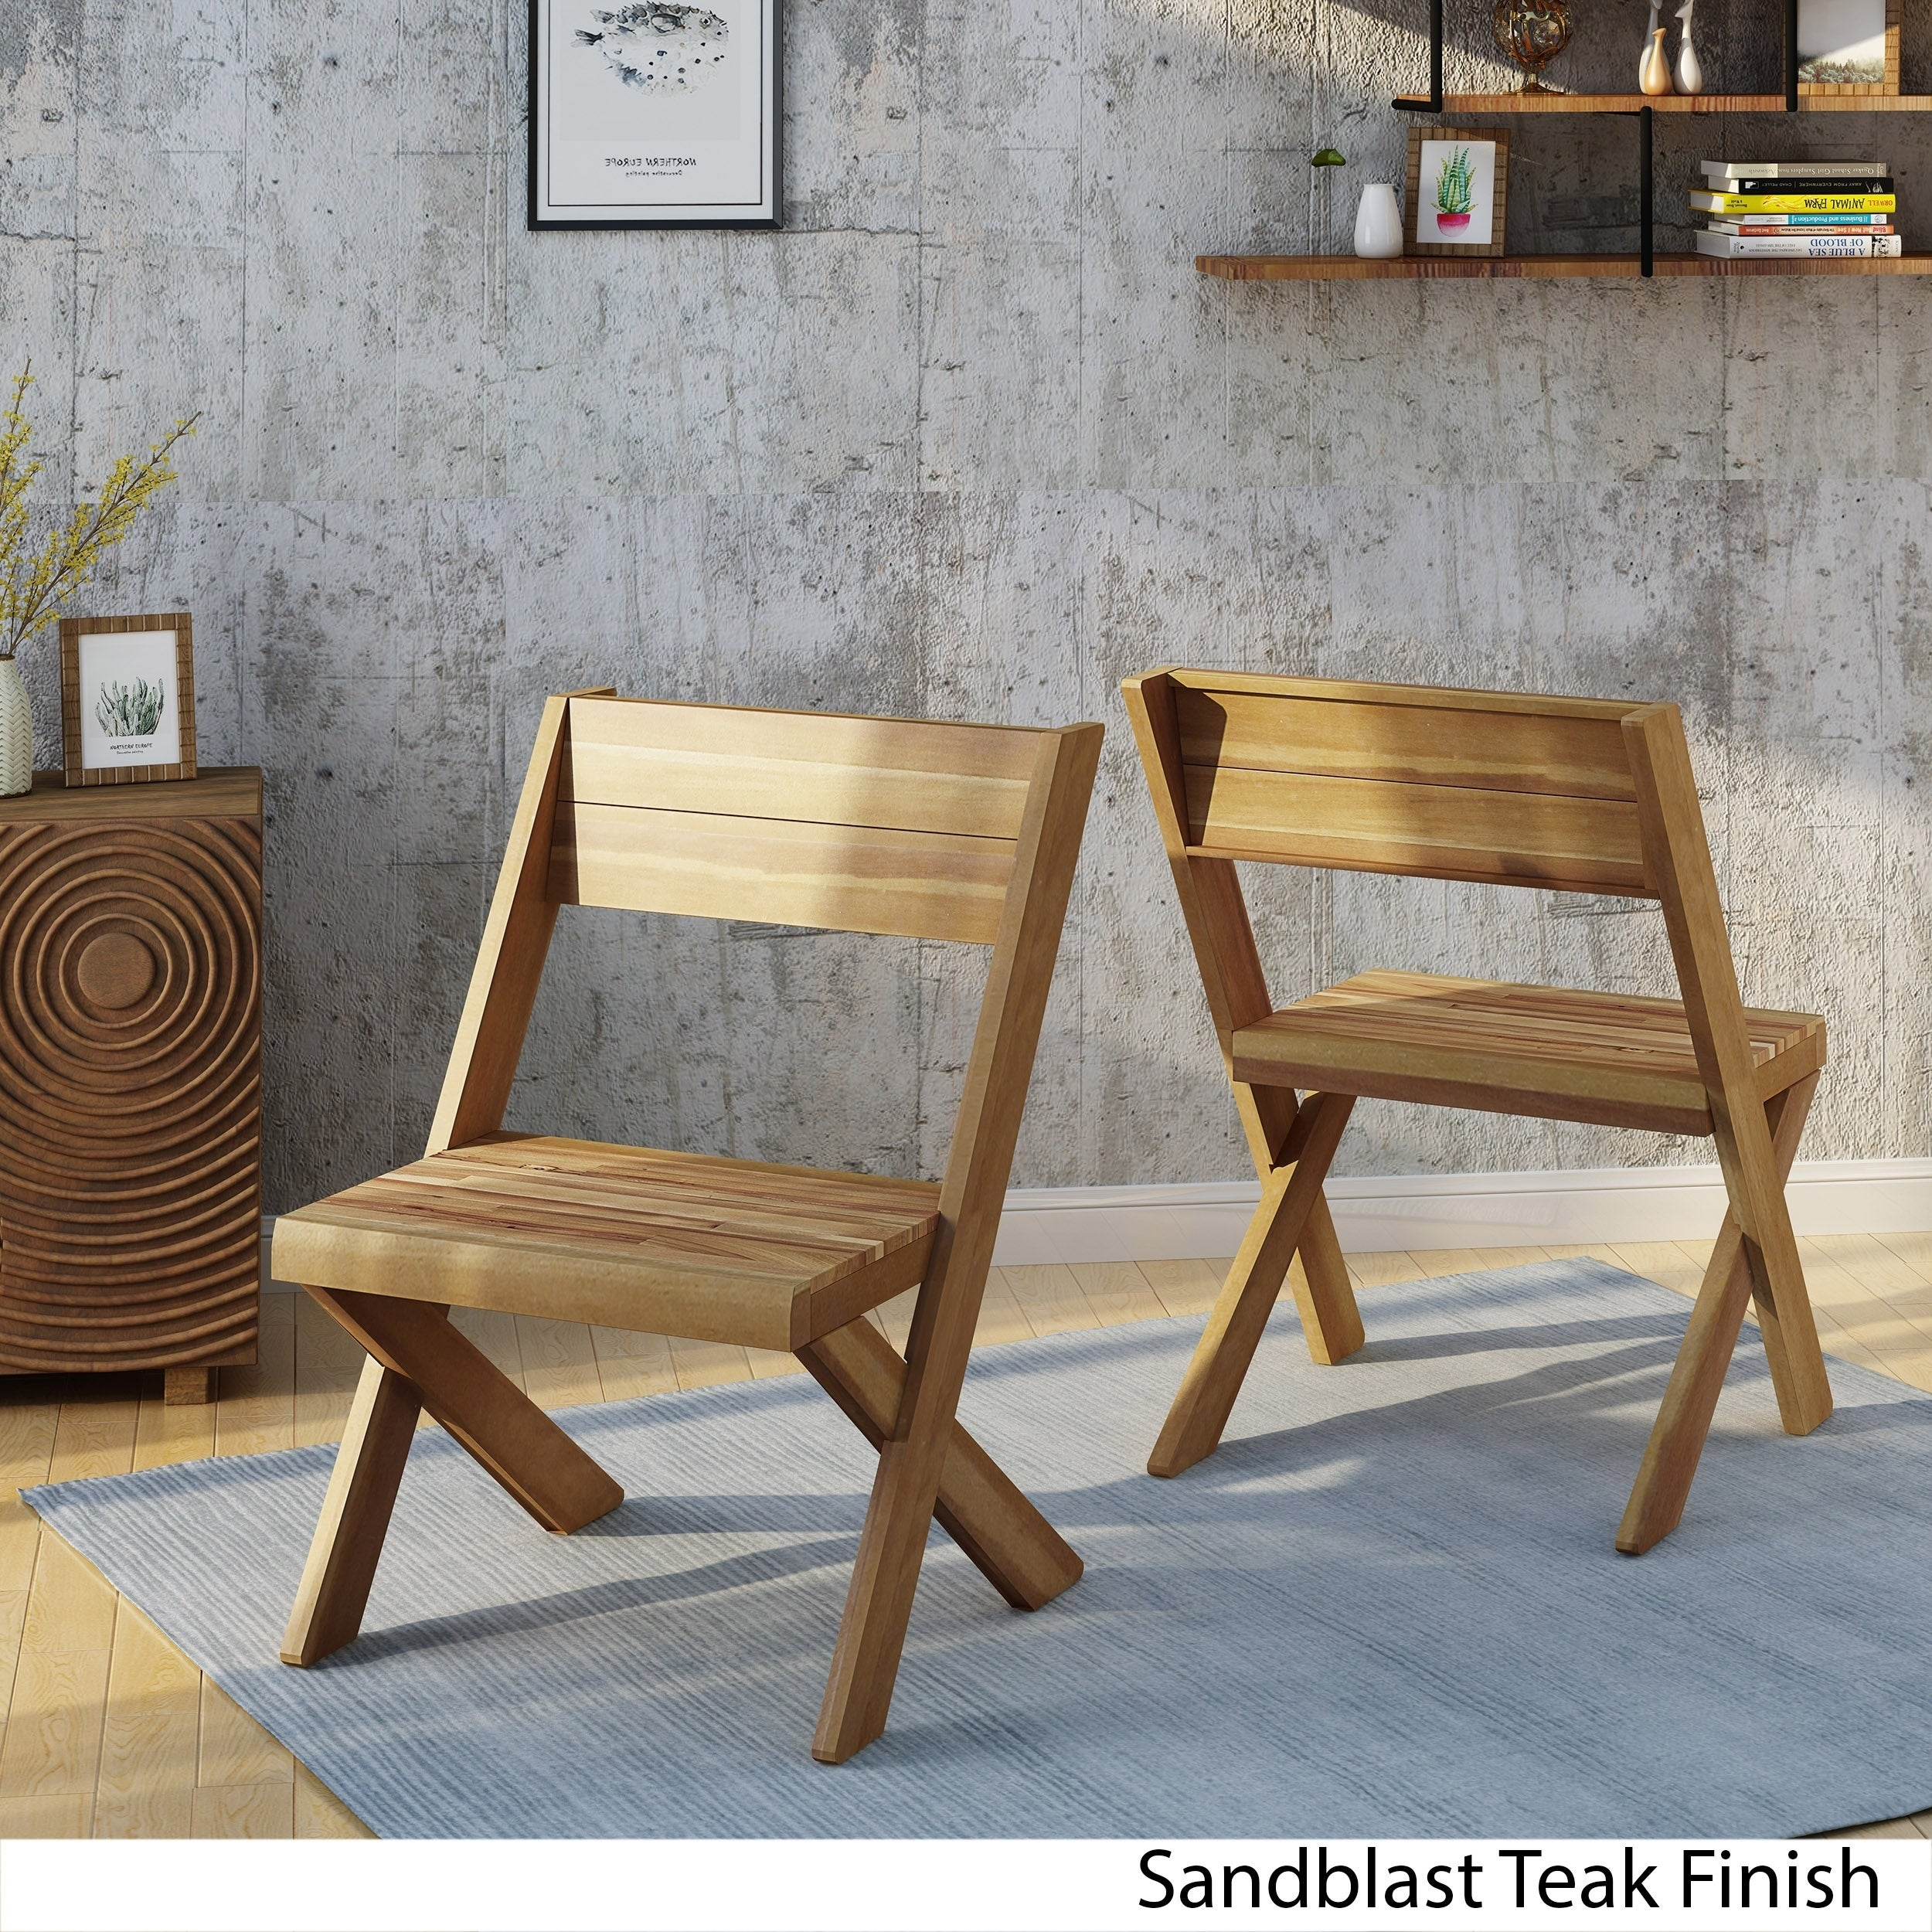 Shop esmeralda farmhouse acacia wood accent chair set of 2 by christopher knight home on sale free shipping today overstock com 20833100